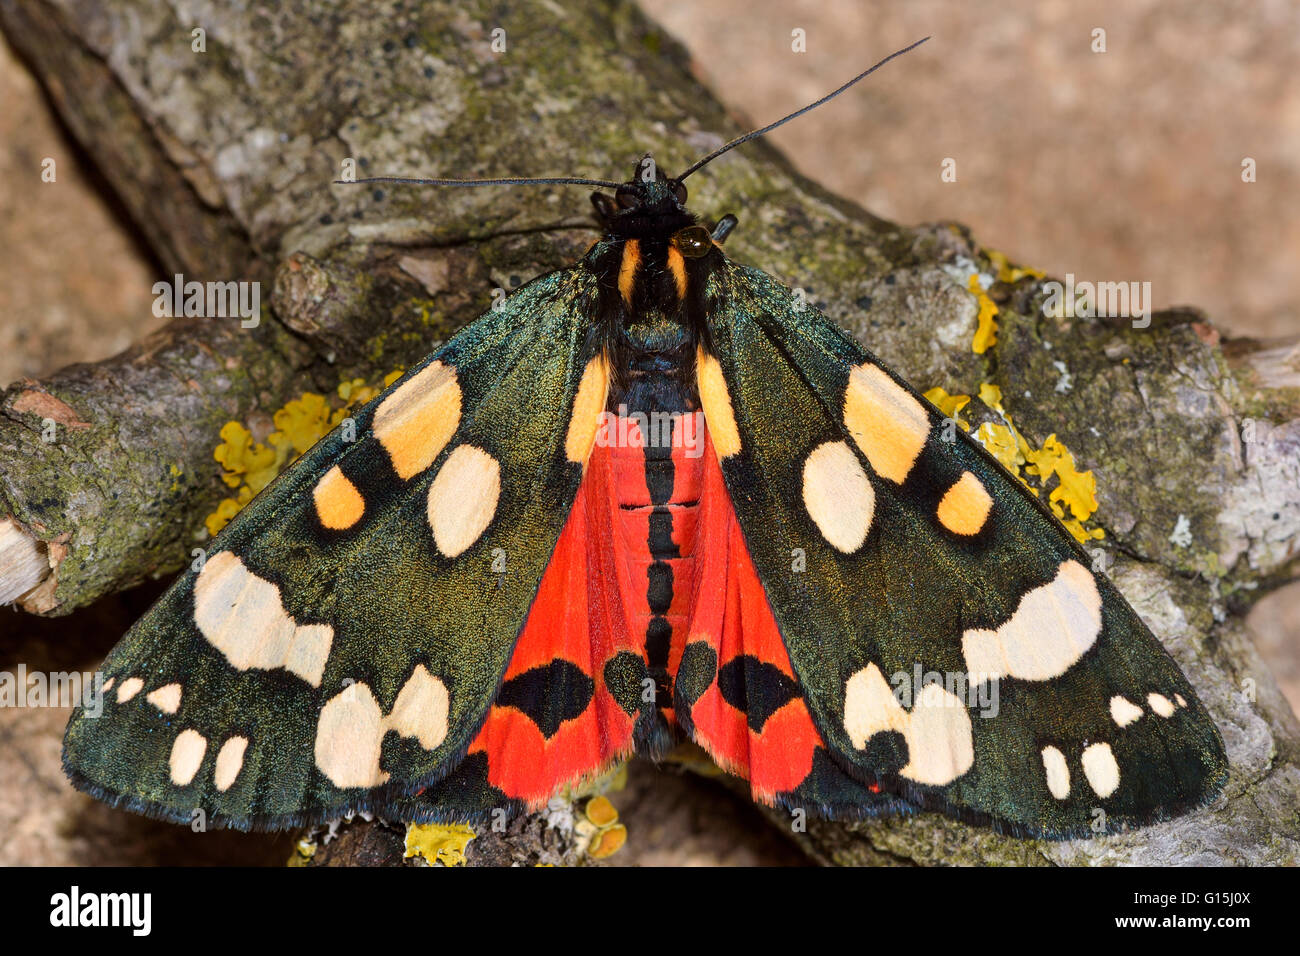 Scarlet tiger moth (Callimorpha dominula) with wings open and red hindwings. Brightly colored insect in the family - Stock Image